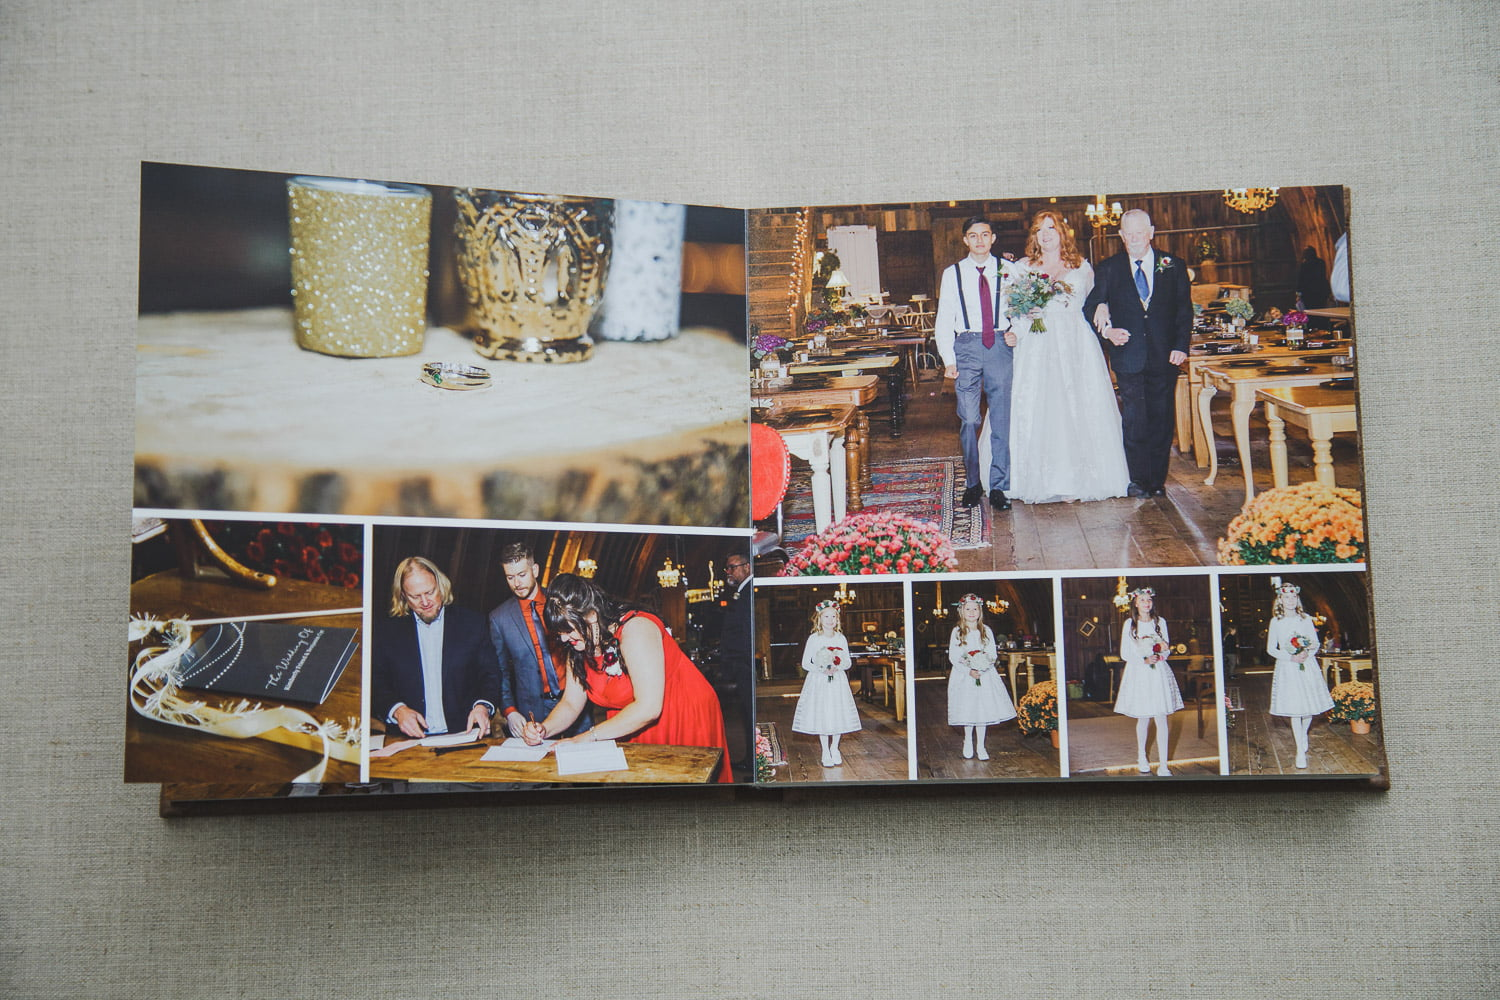 a wedding album spread of the ceremony